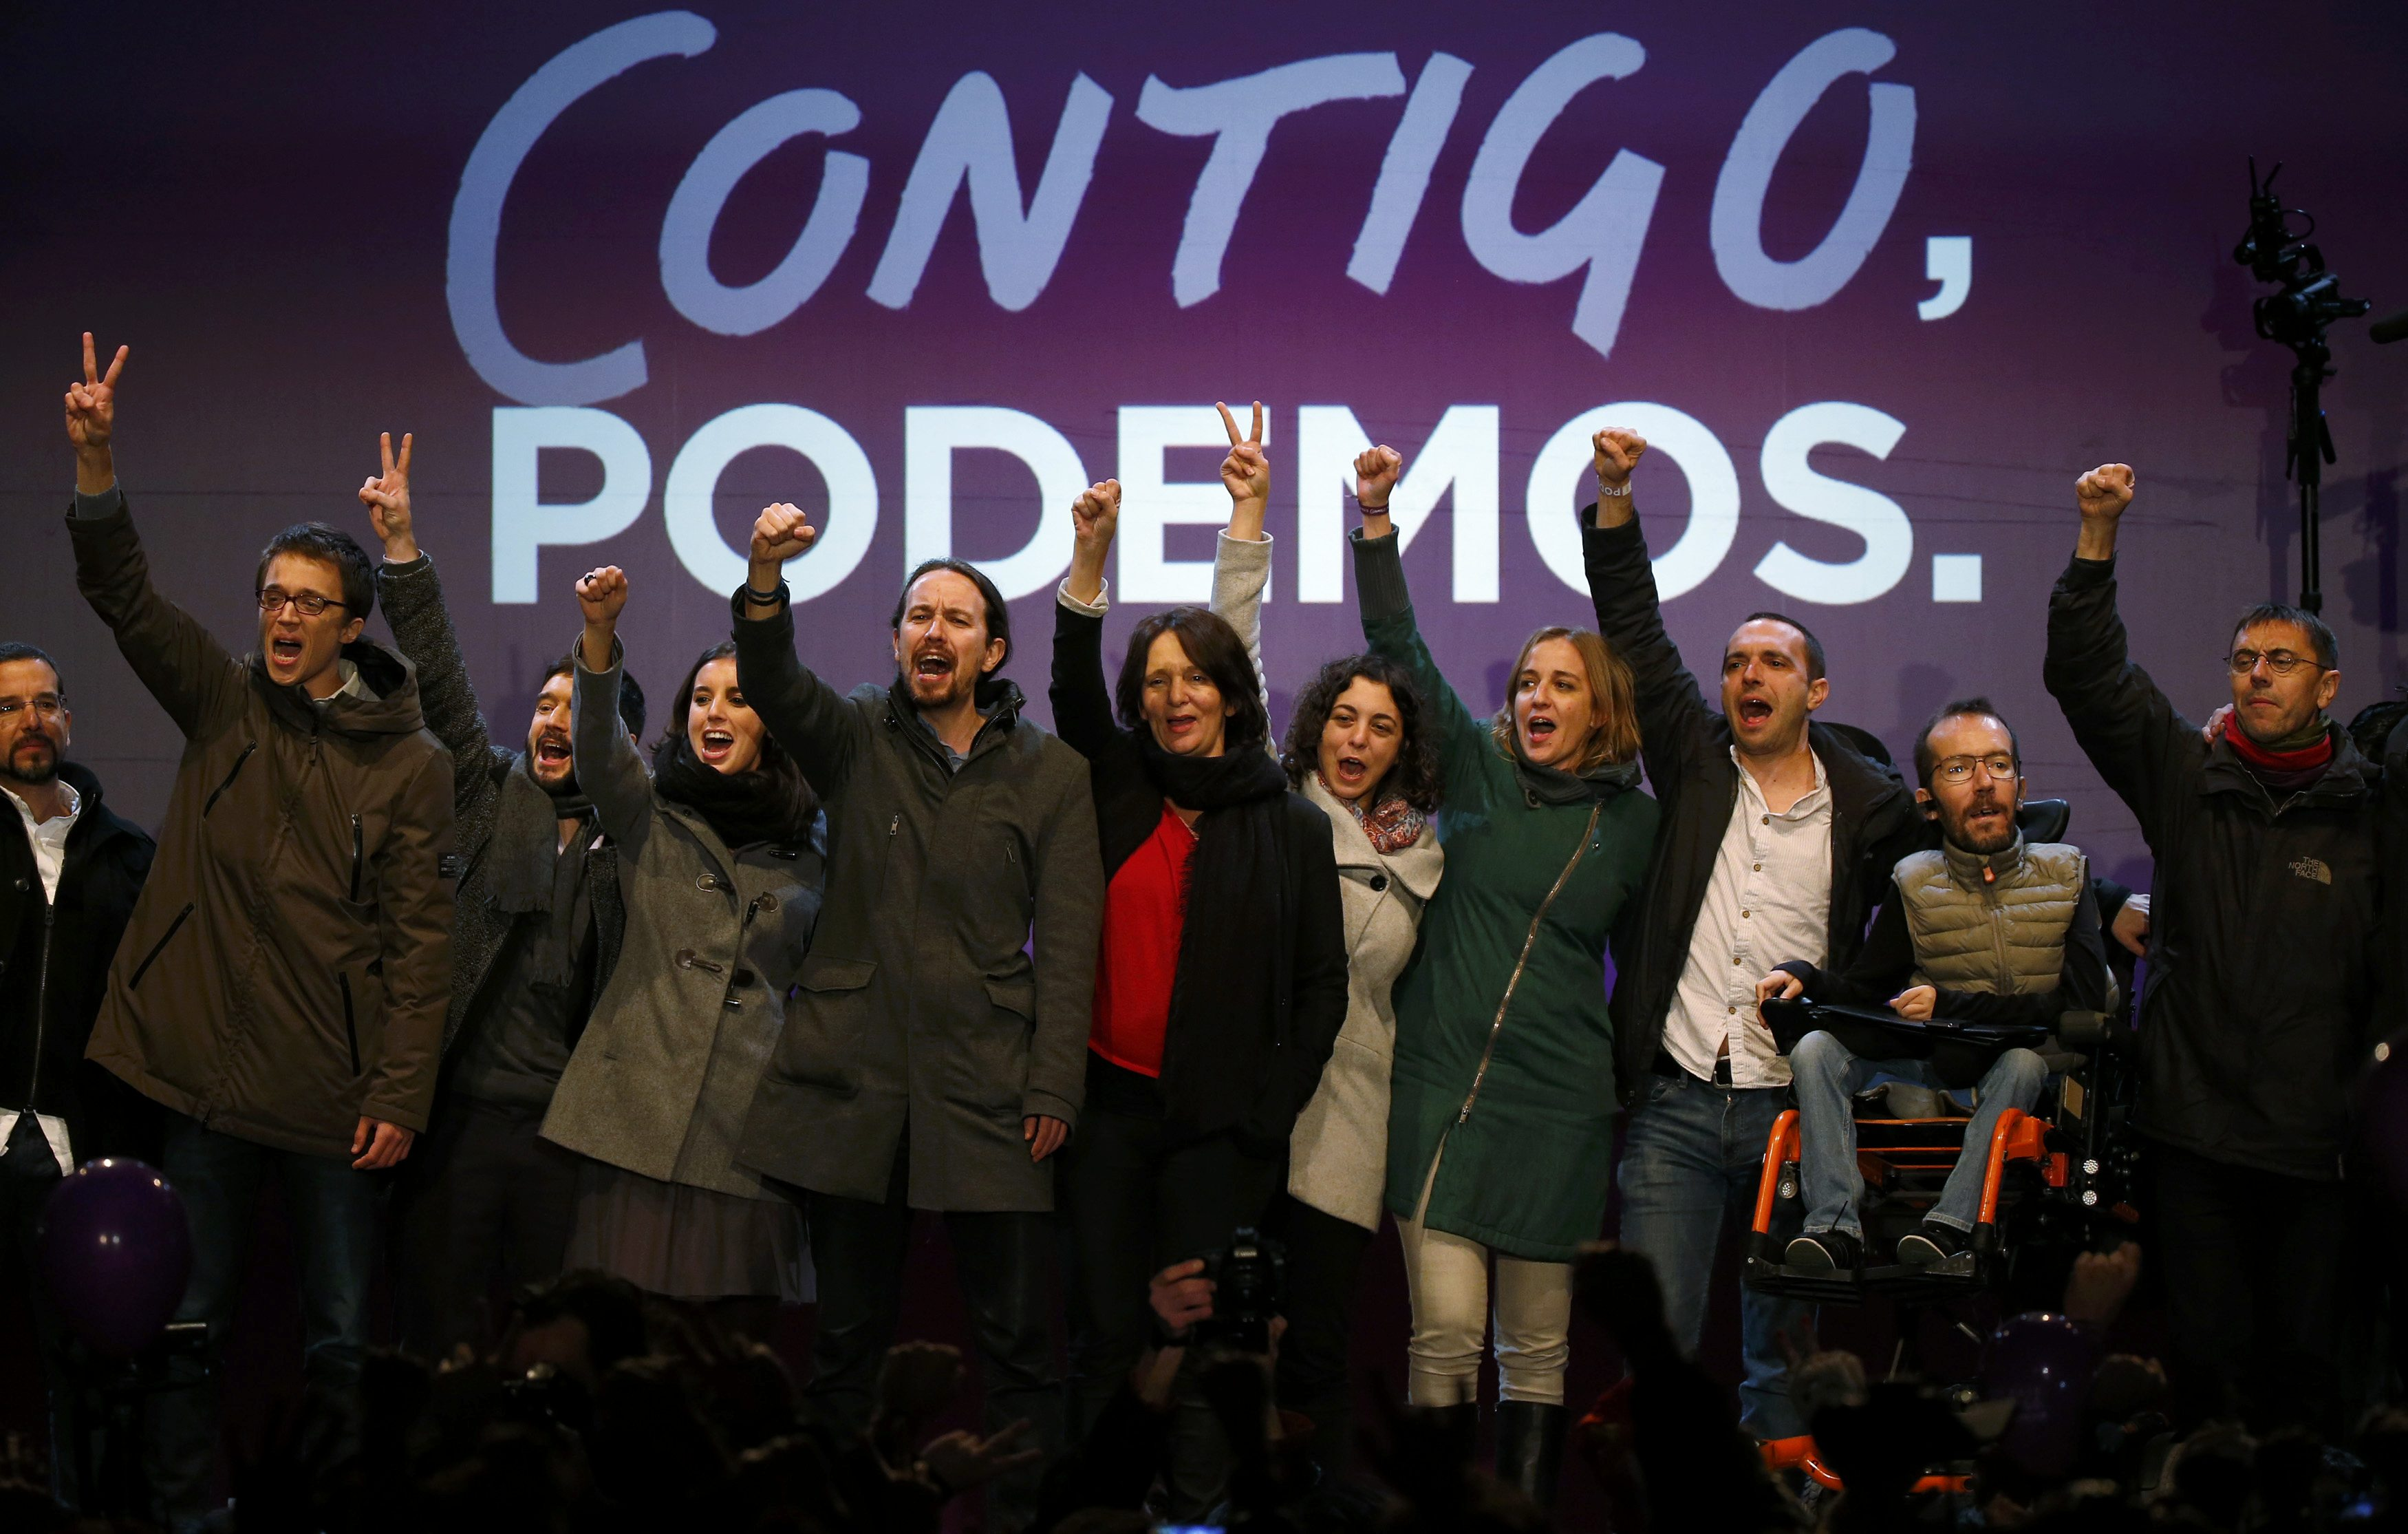 2015-12-21T002905Z_1520611442_LR1EBCL01C7CT_RTRMADP_3_SPAIN-ELECTION.JPG